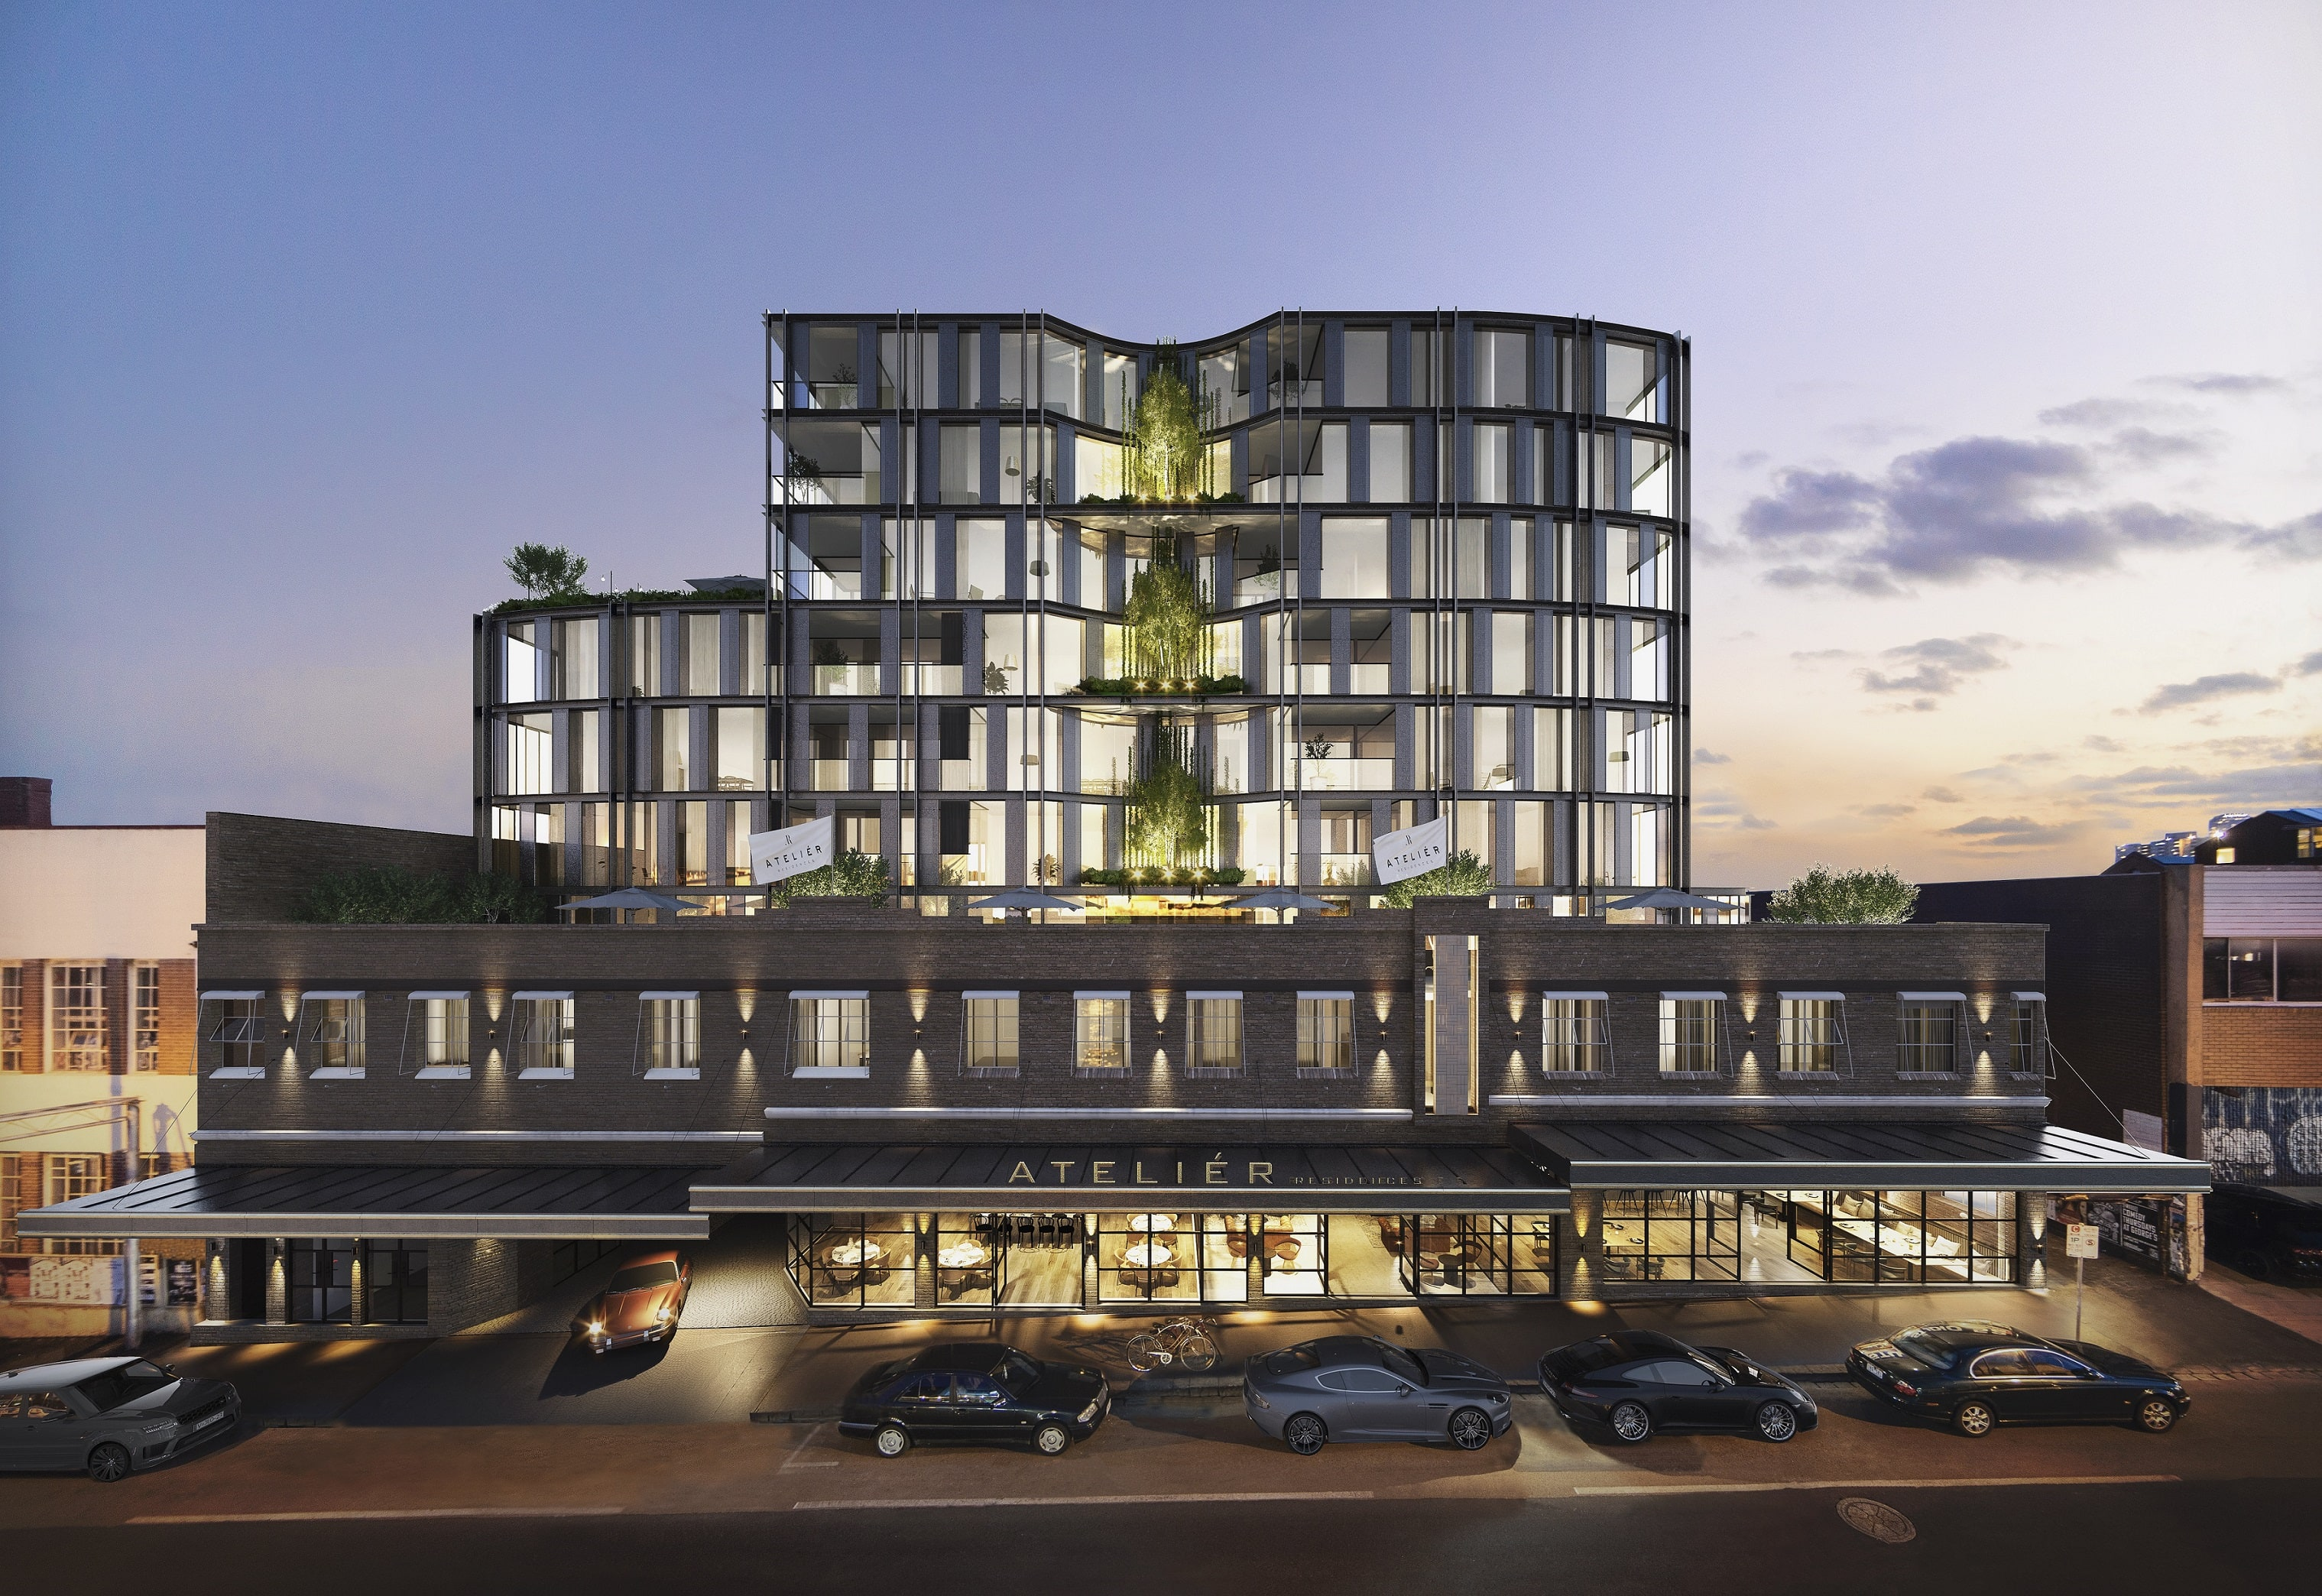 GURNER™ makes first foray into hotel industry with New York-inspired Collingwood development